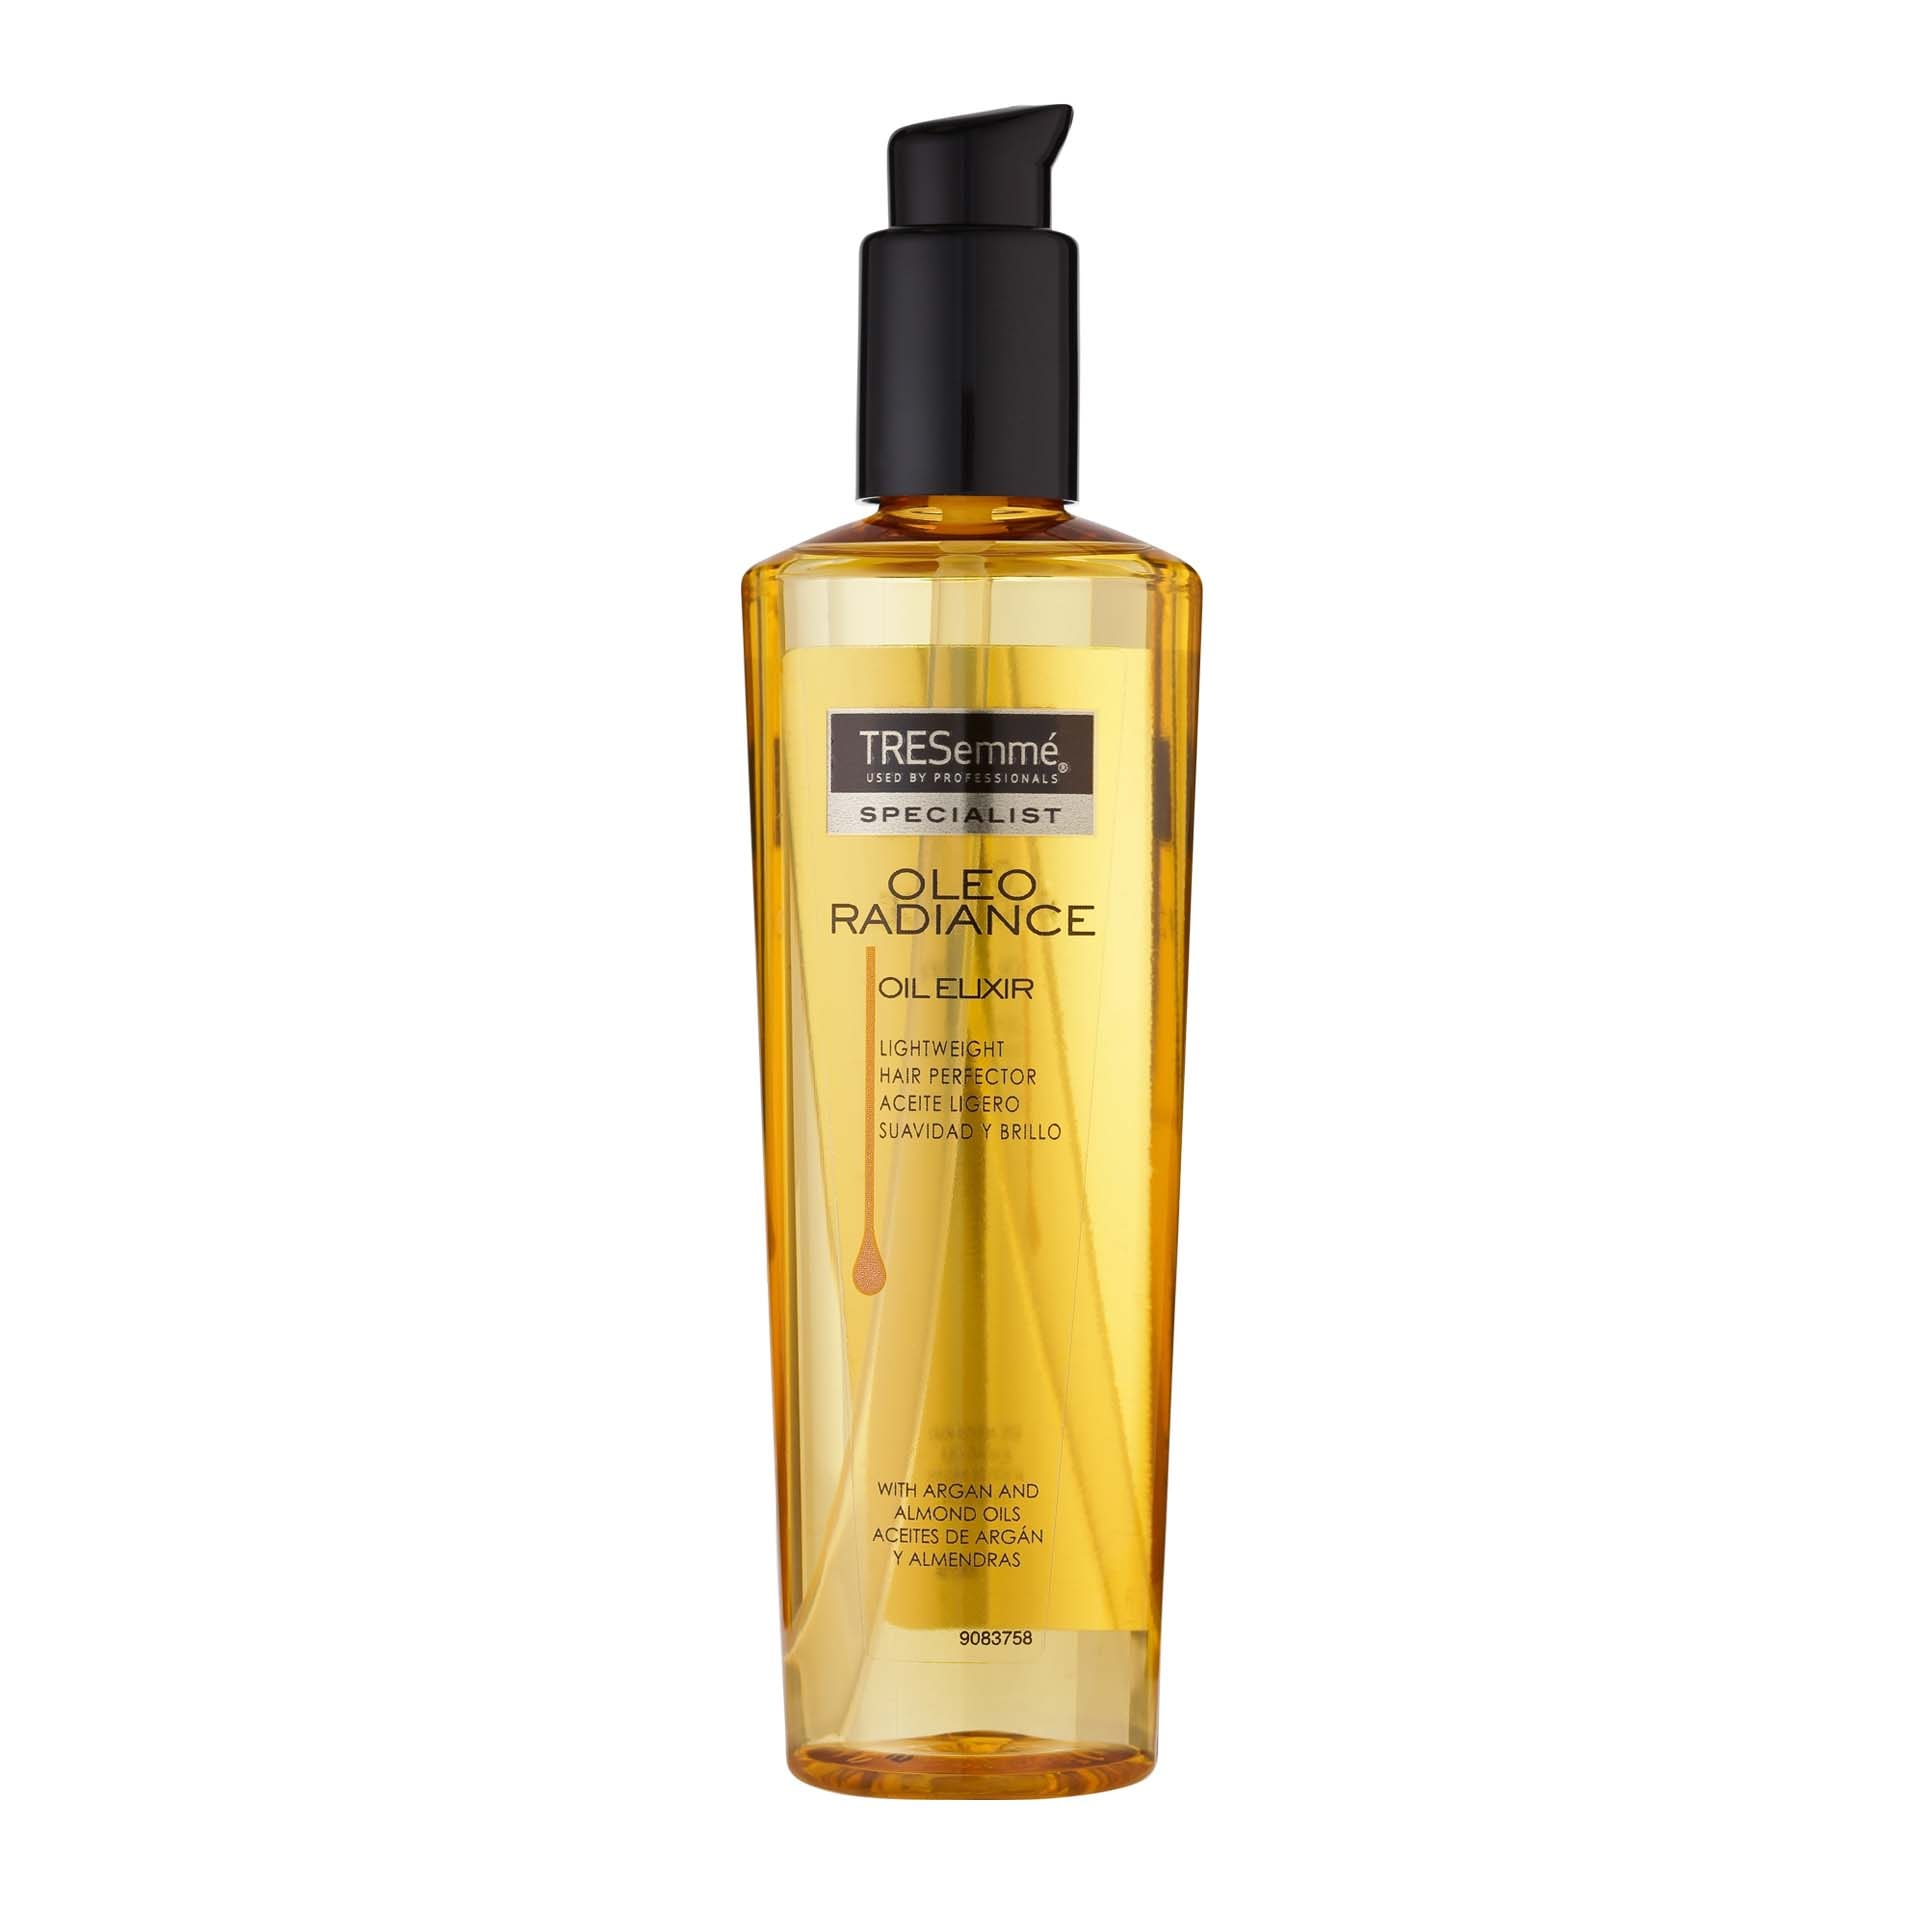 tresemme oleo radiance The best hair oil for dry hair